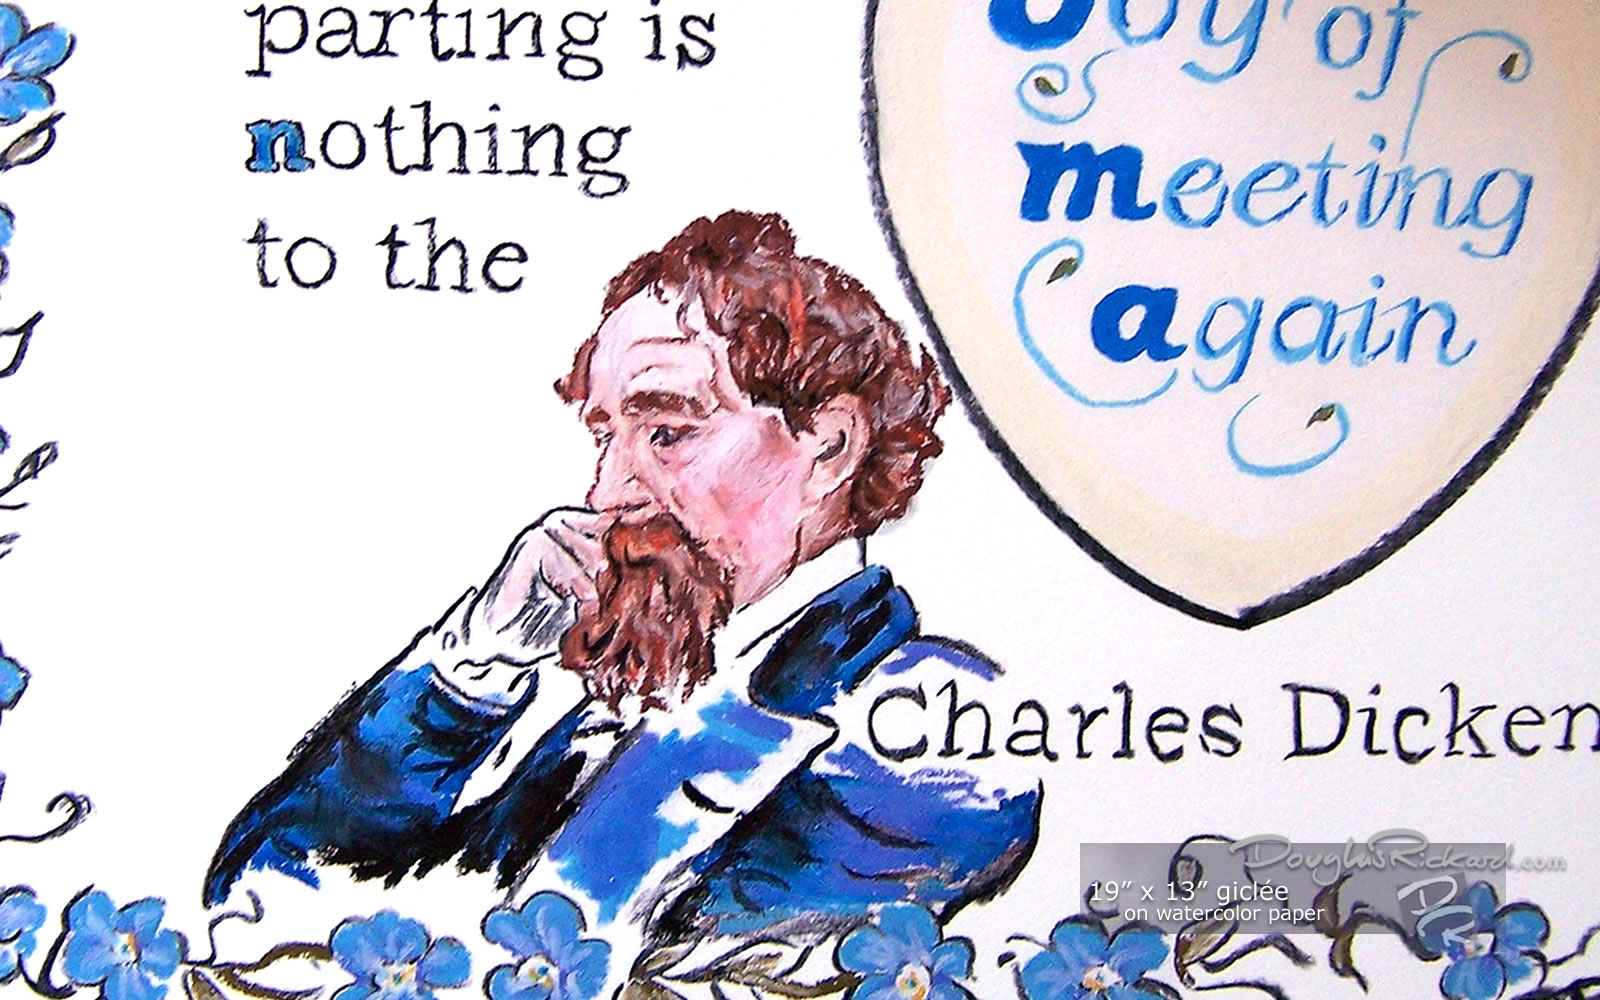 Charles Dickens's quote #1